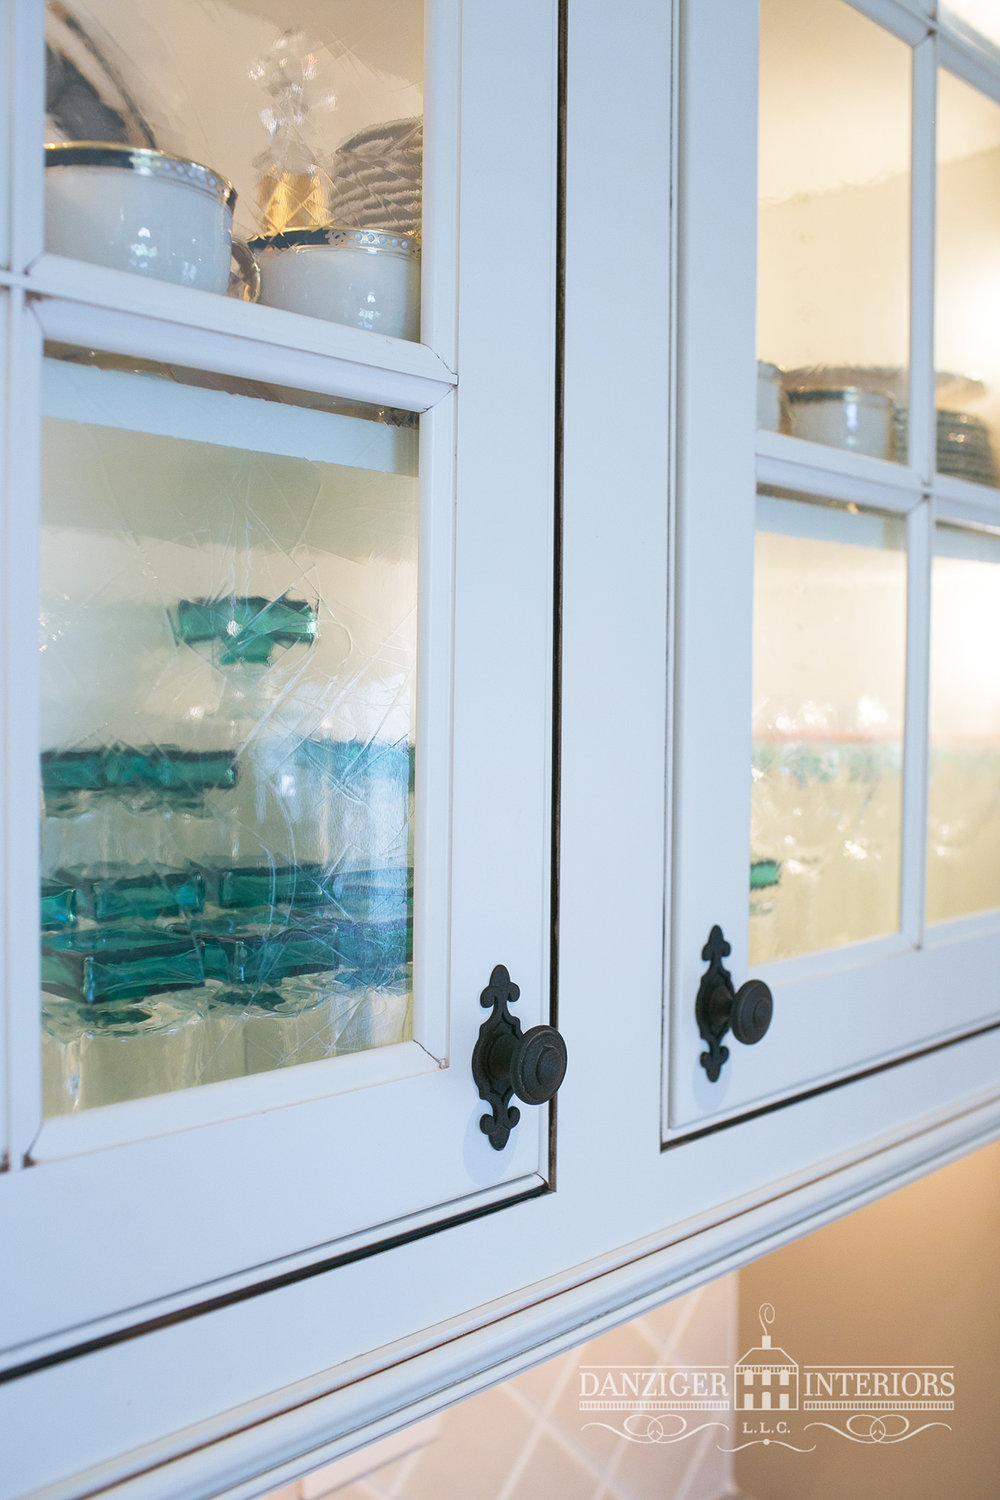 Cabinets with clear antique streaked glass